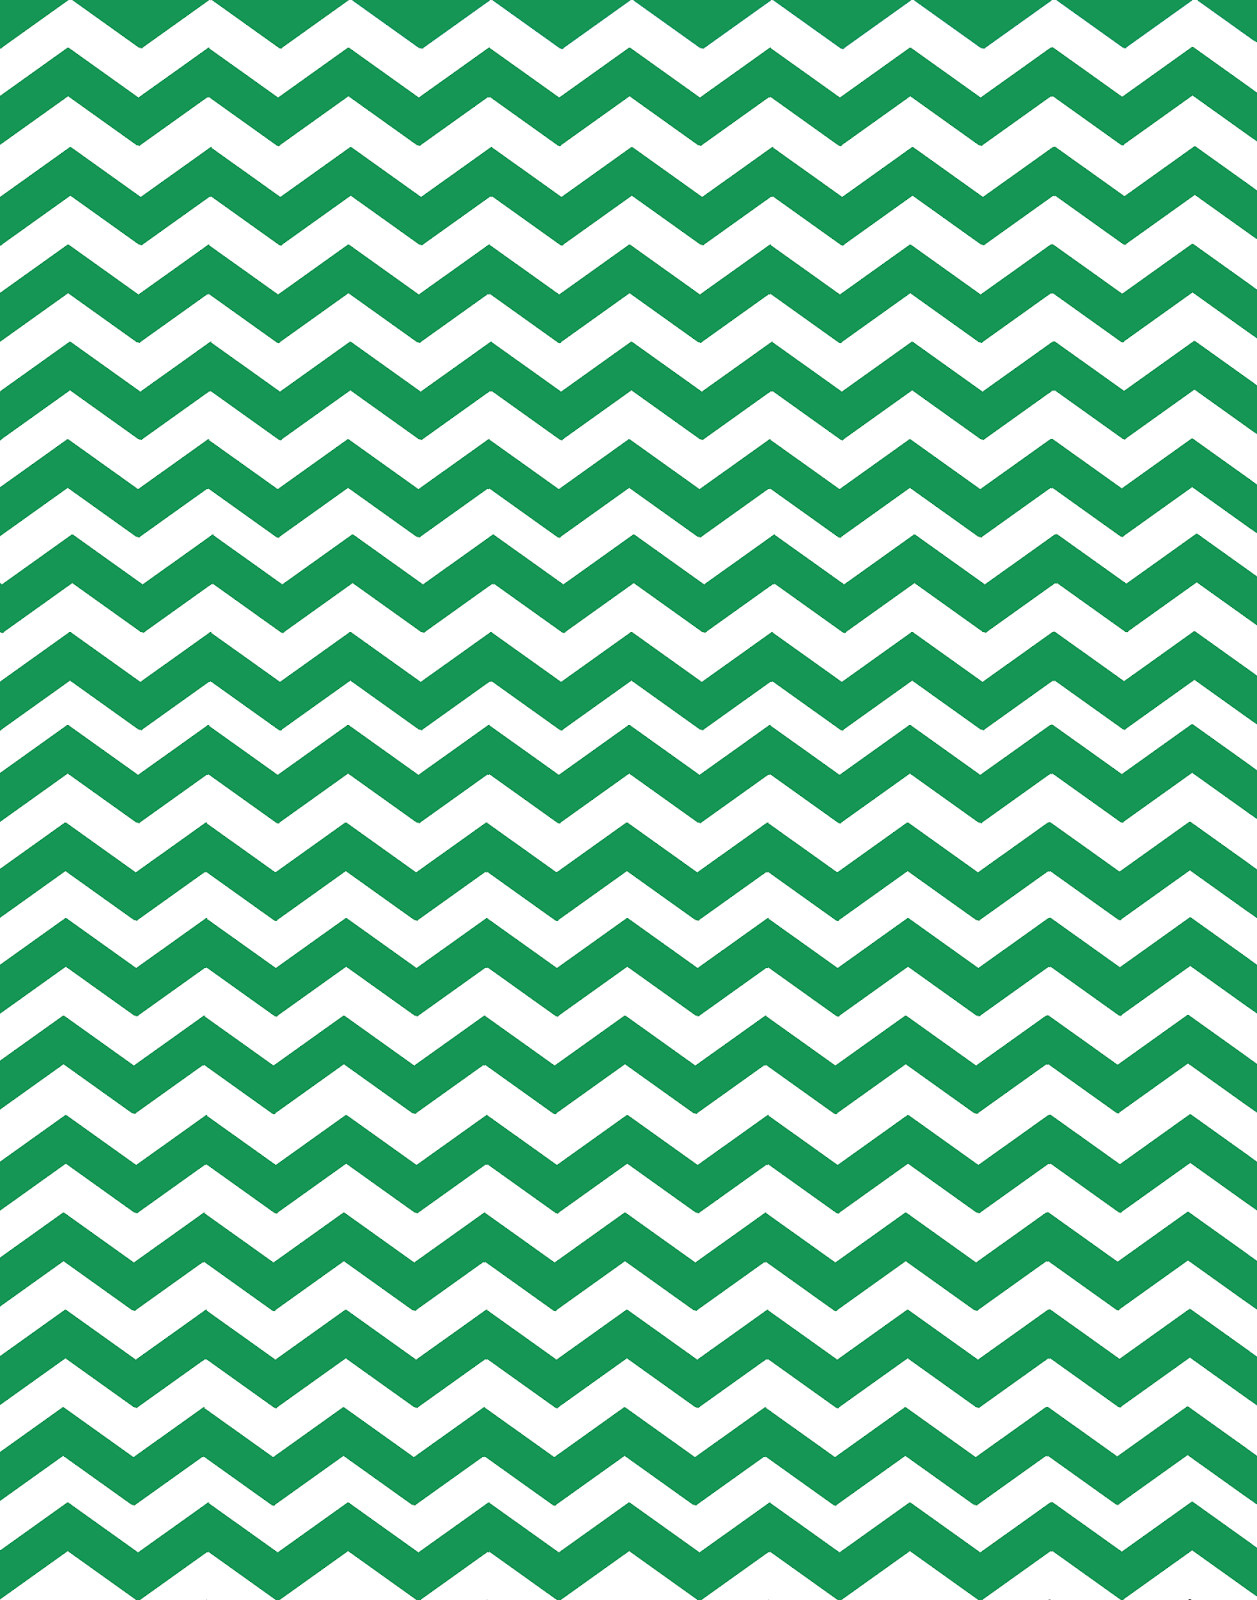 Green Chevron Png - Free download Dark Green Chevron Peter pumpkin eater green ...